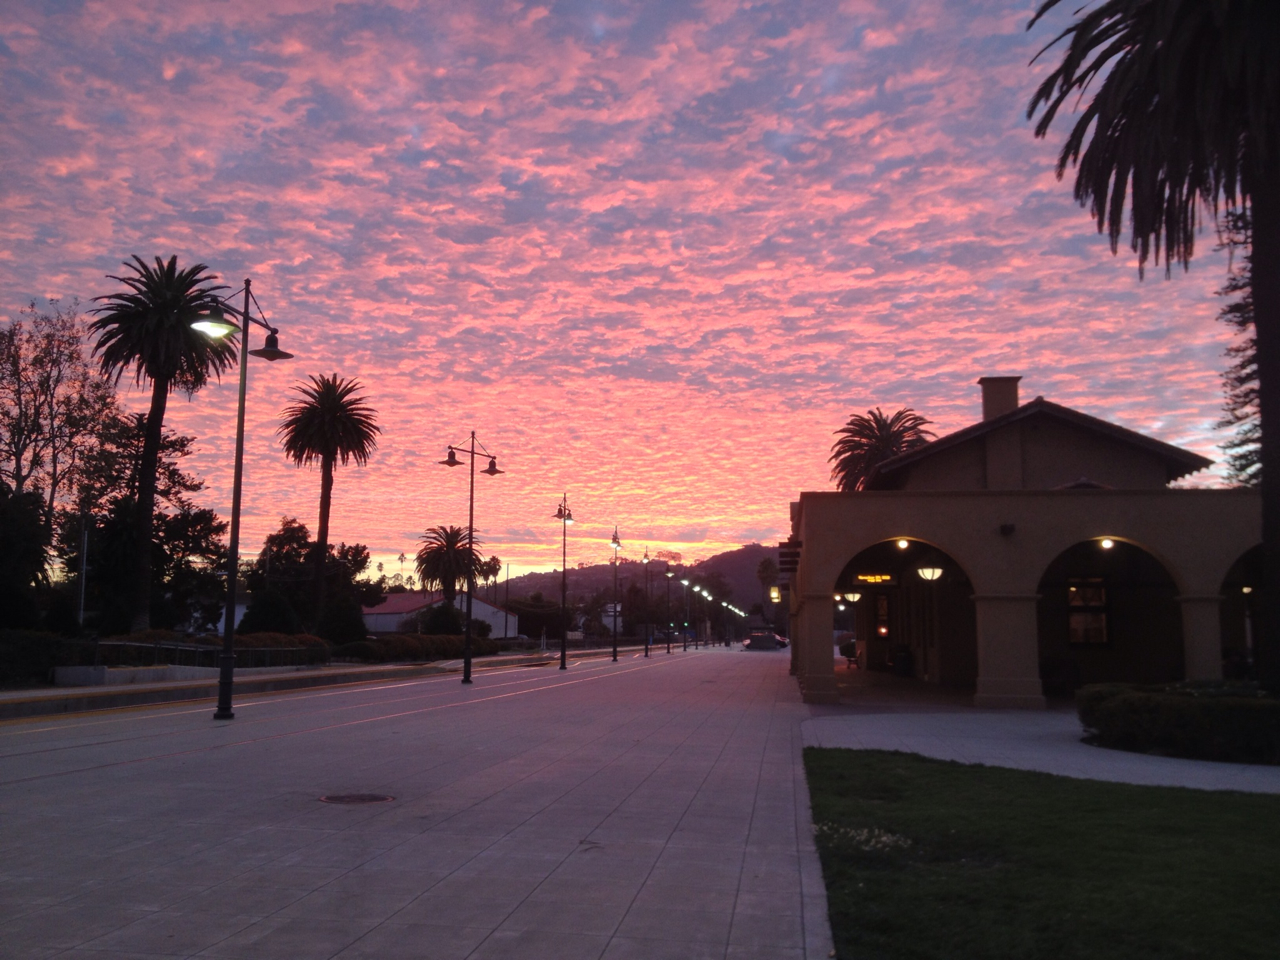 Santa Barbara Train Station, CA